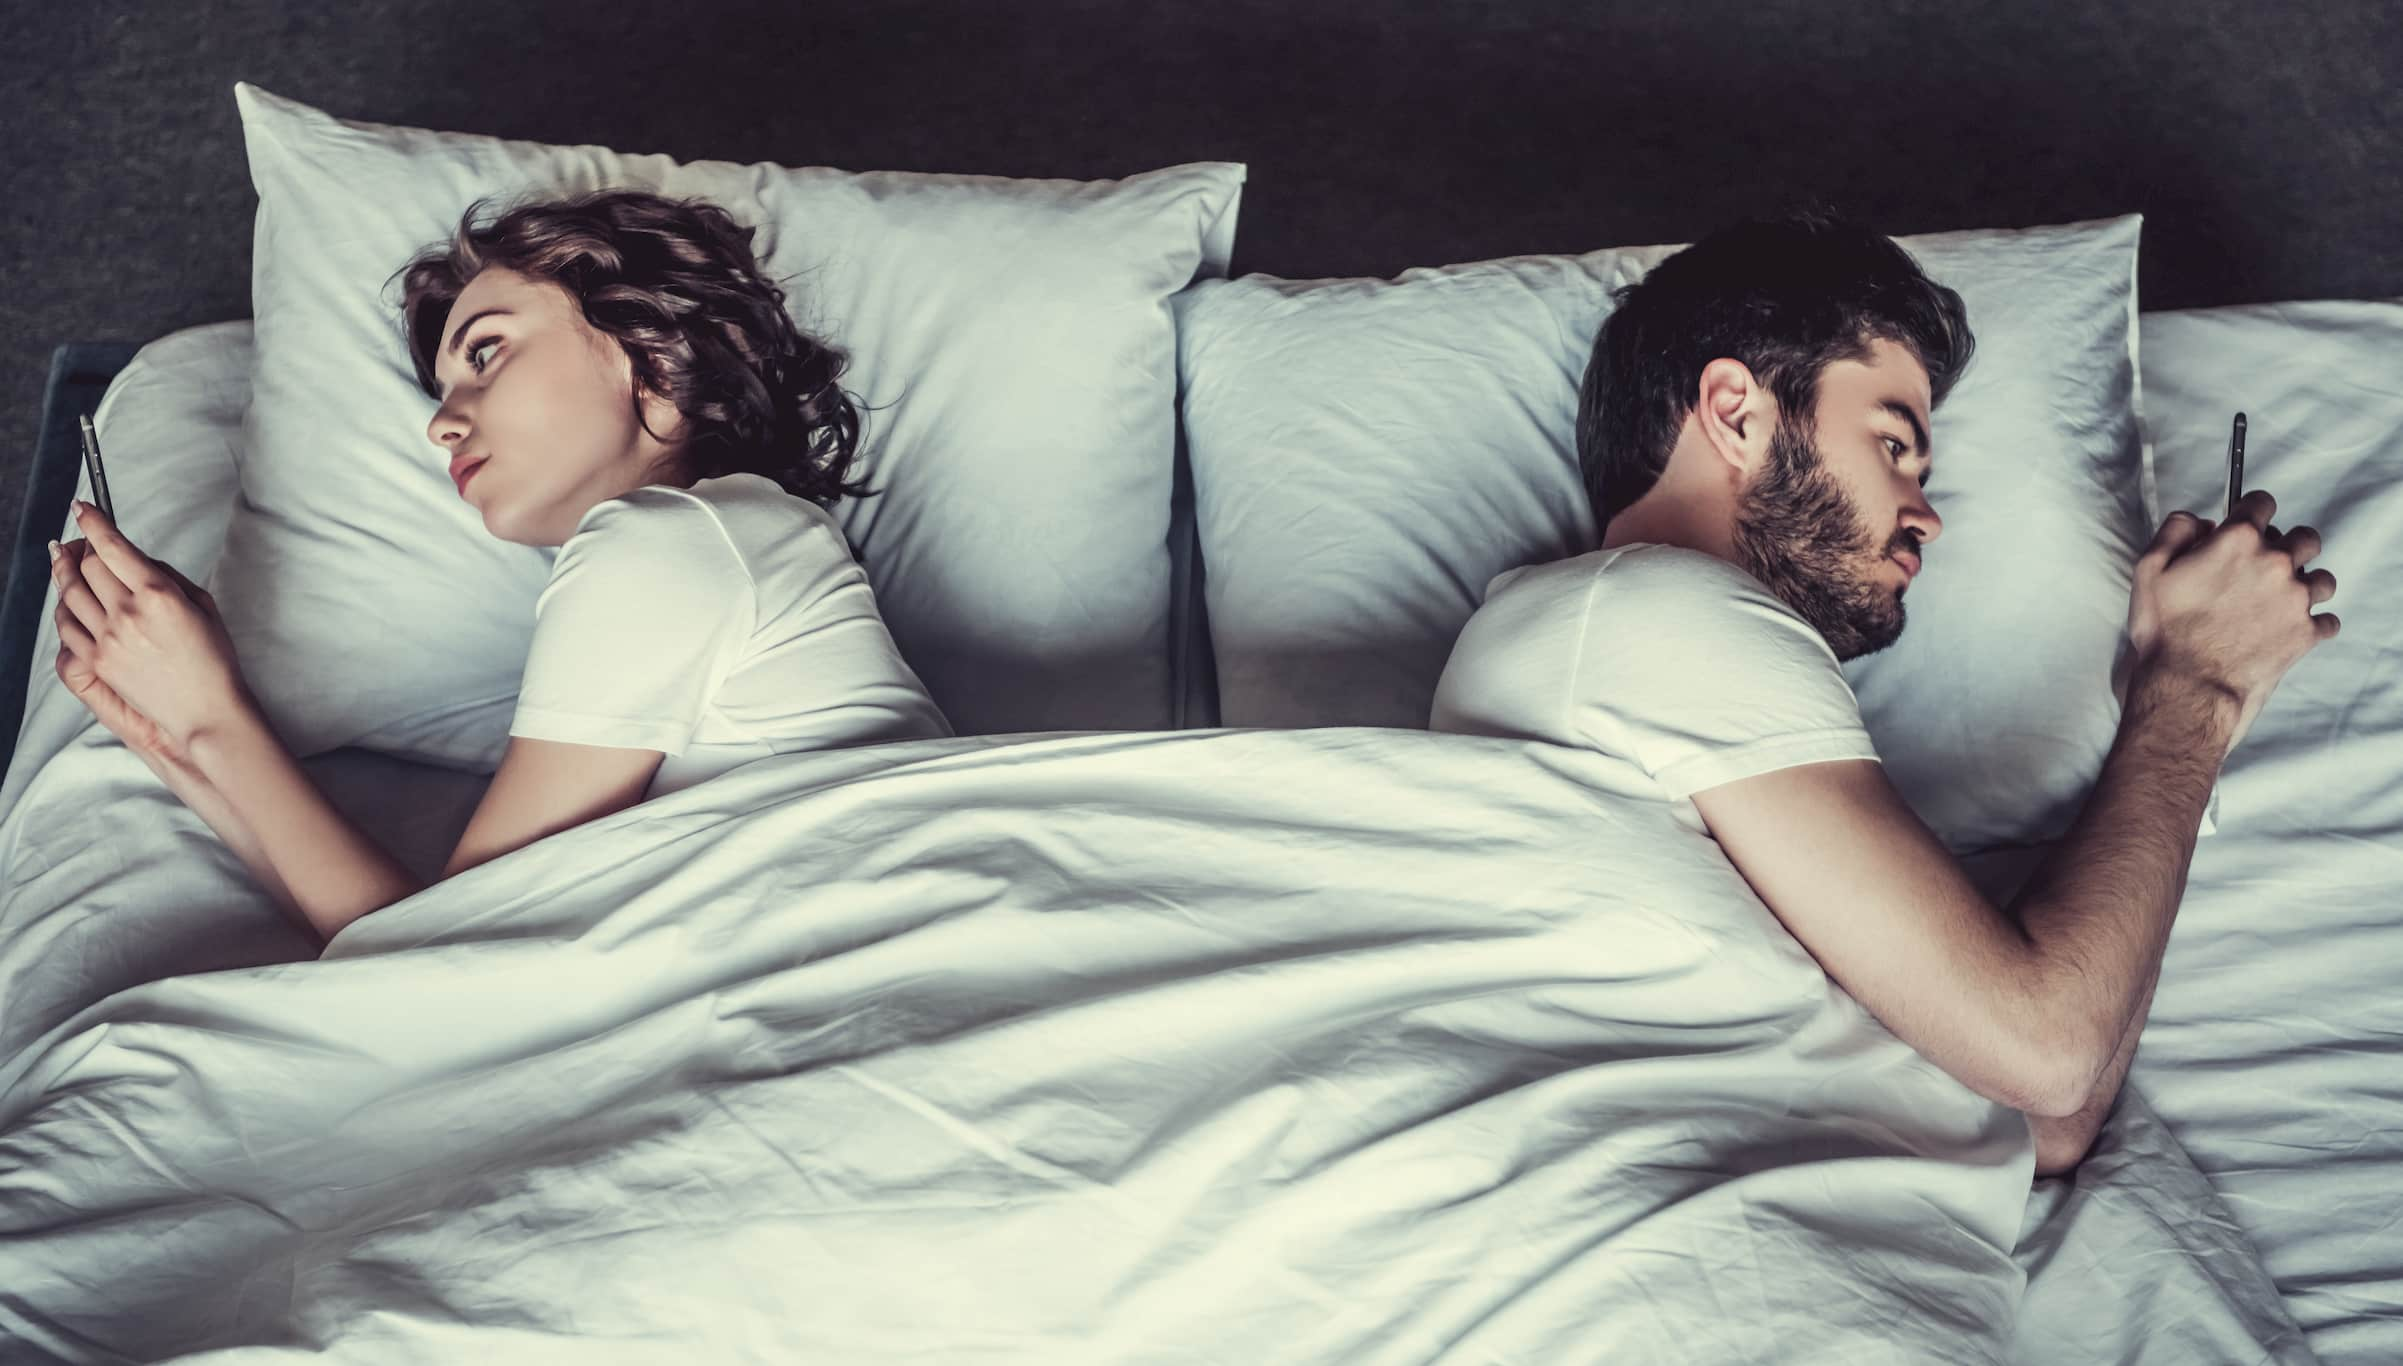 Relationship Boredom: Why It Happens & How To Fix It